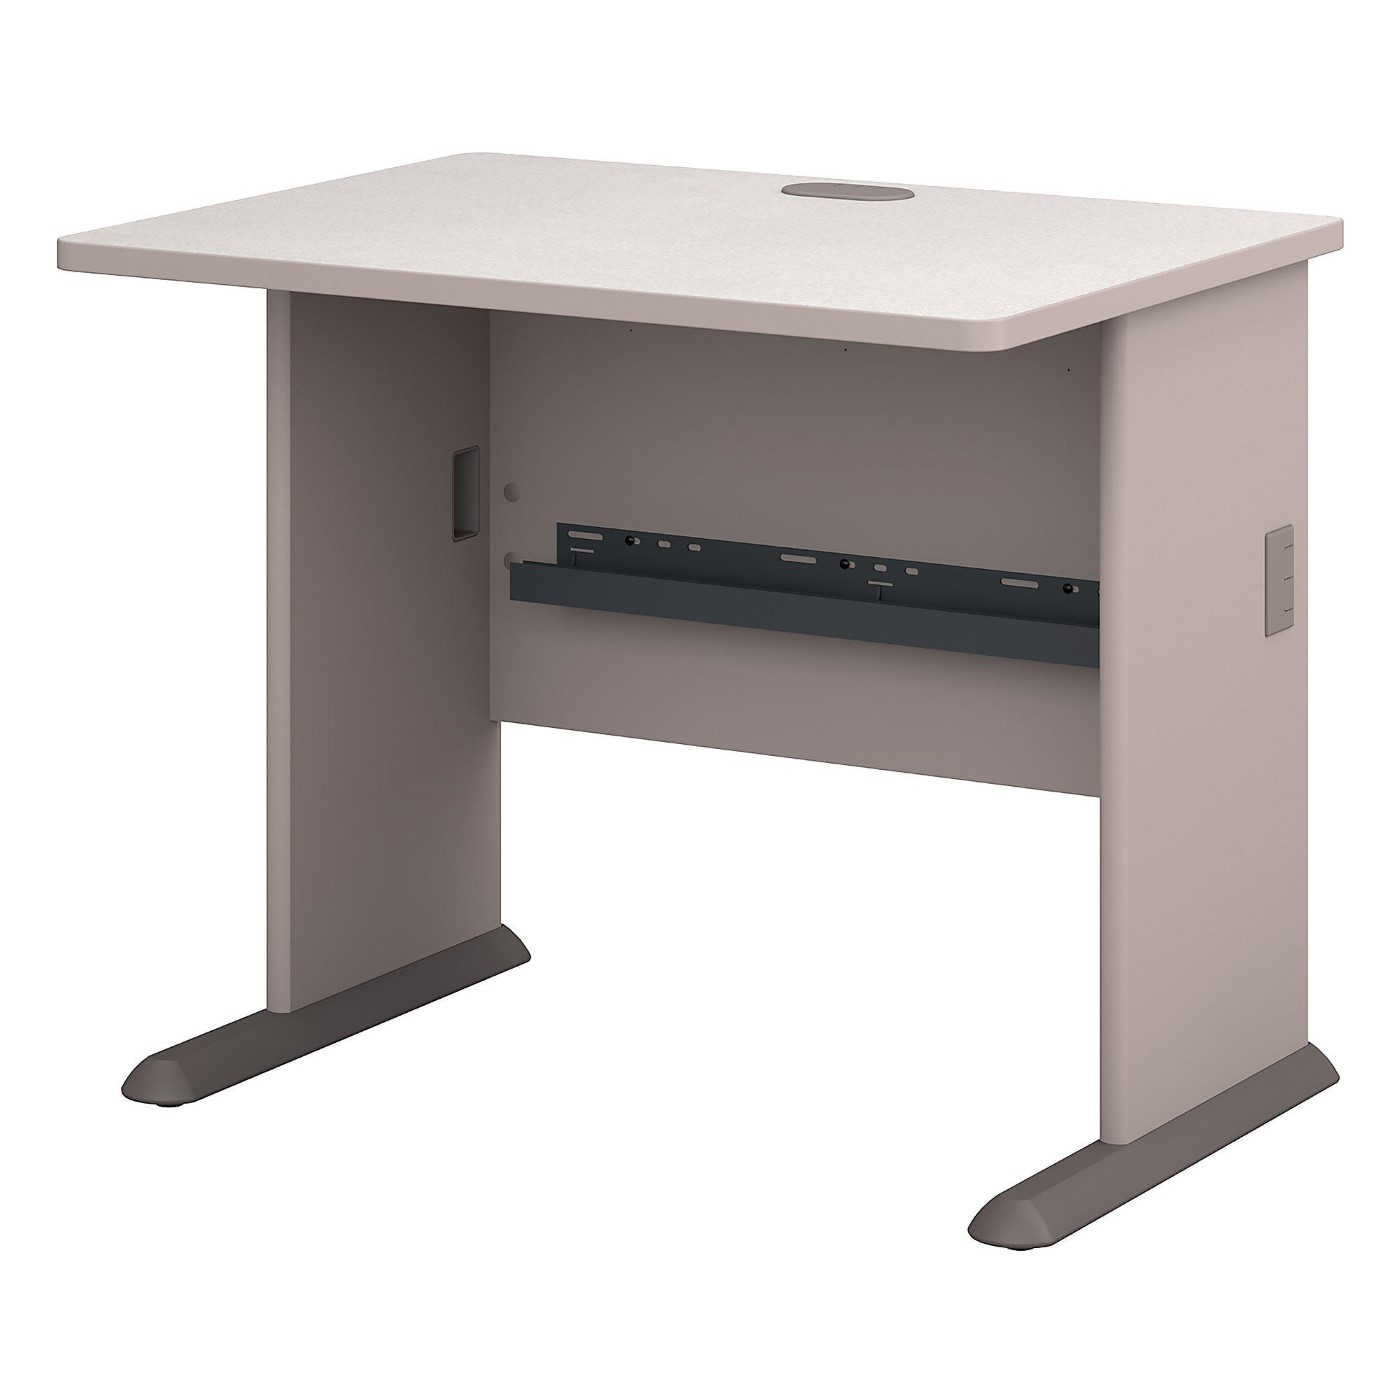 BUSH BUSINESS FURNITURE SERIES A 36W DESK. FREE SHIPPING  VIDEO BELOW.